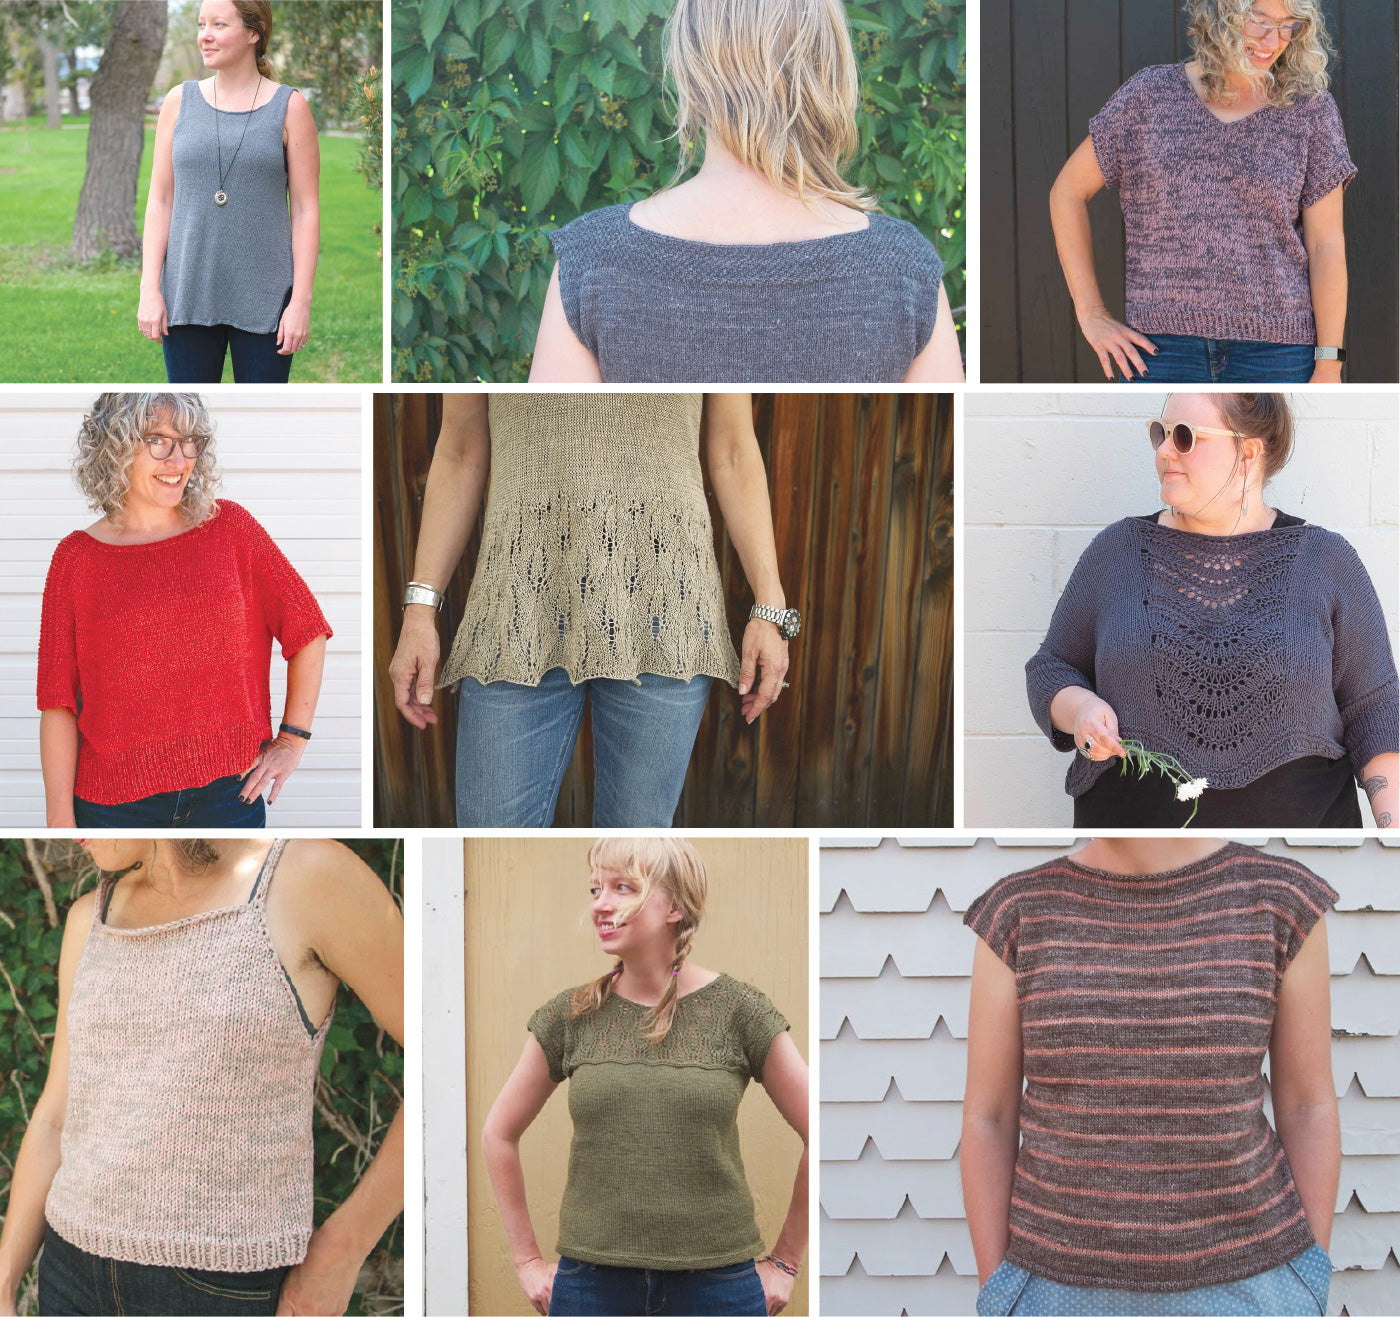 A collage of nine photos, each features one of the fancy tiger folks wearing various summery handknit tops. Several feature lacework, some are simple tanks, and some are simple tees.